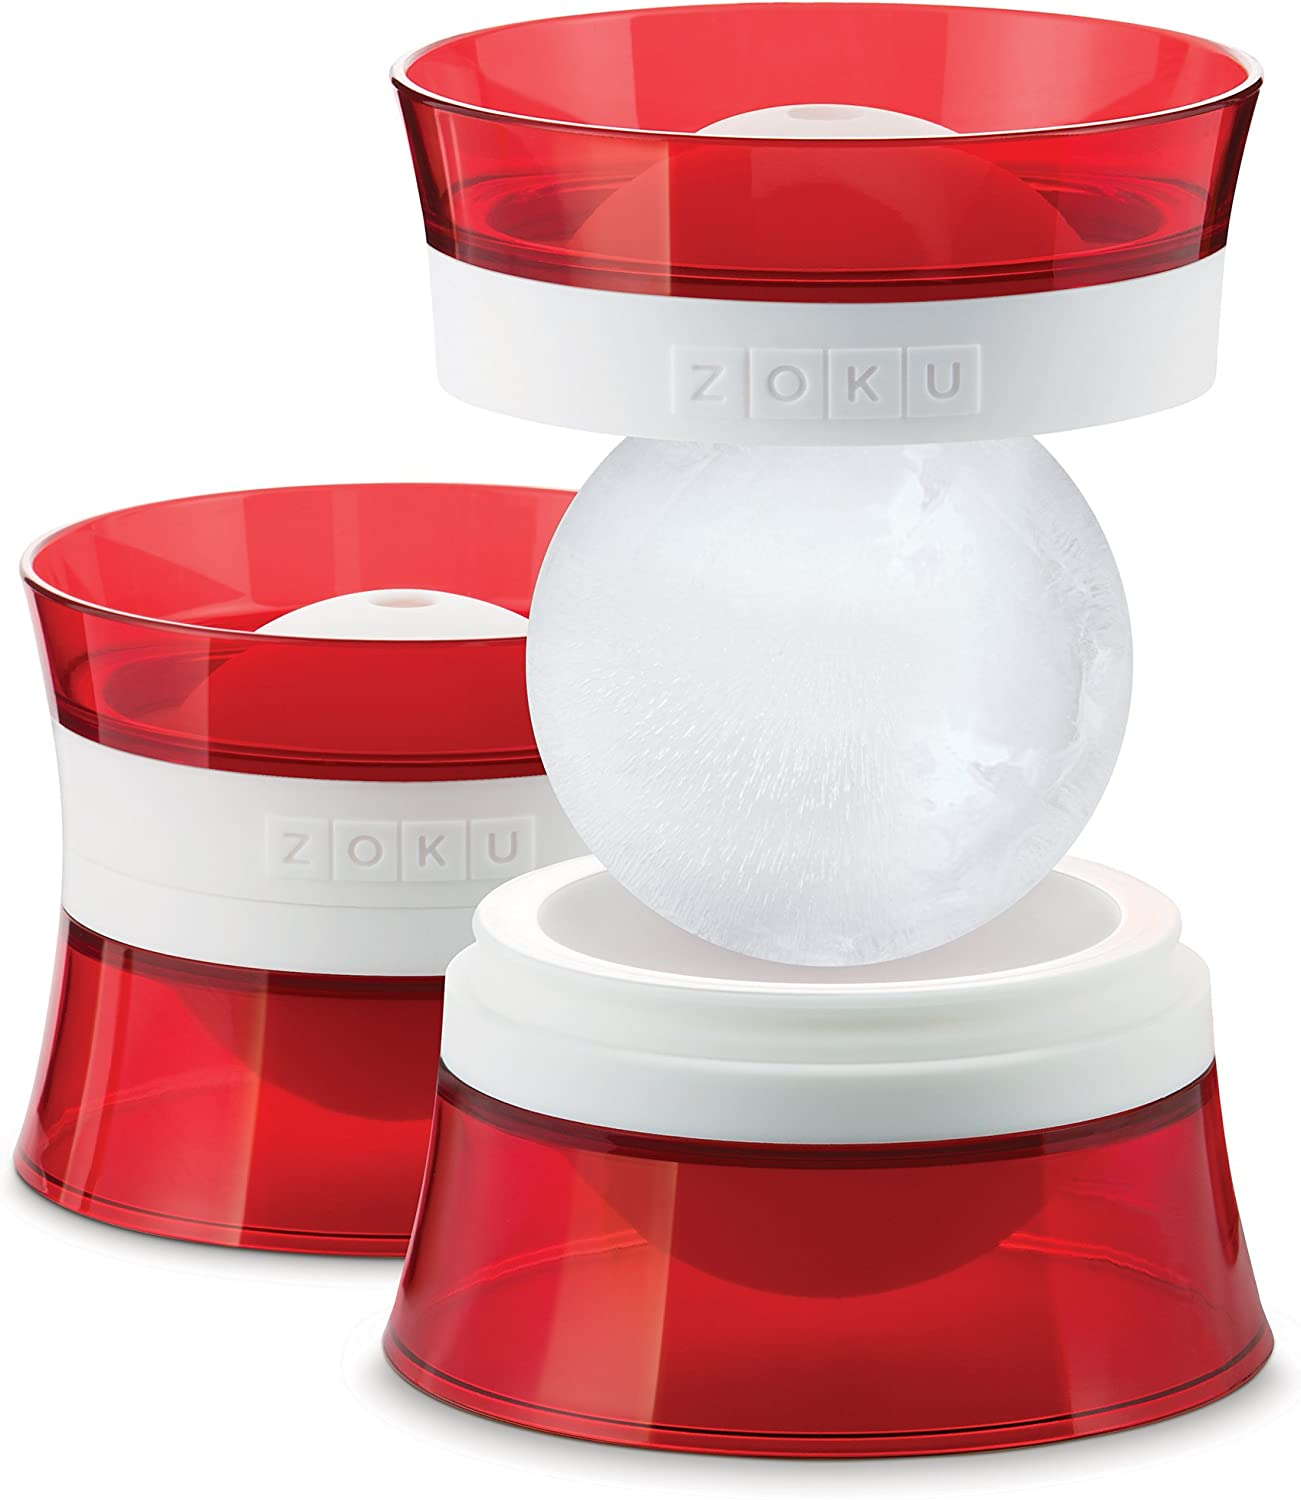 Zoku Silicone Ice Sphere Molds, Set of 2 Stackable Ice Ball Molds, Keep Drinks Colder Longer with Less Dilution, Easy-Release, BPA and Phthalate-Free, Red